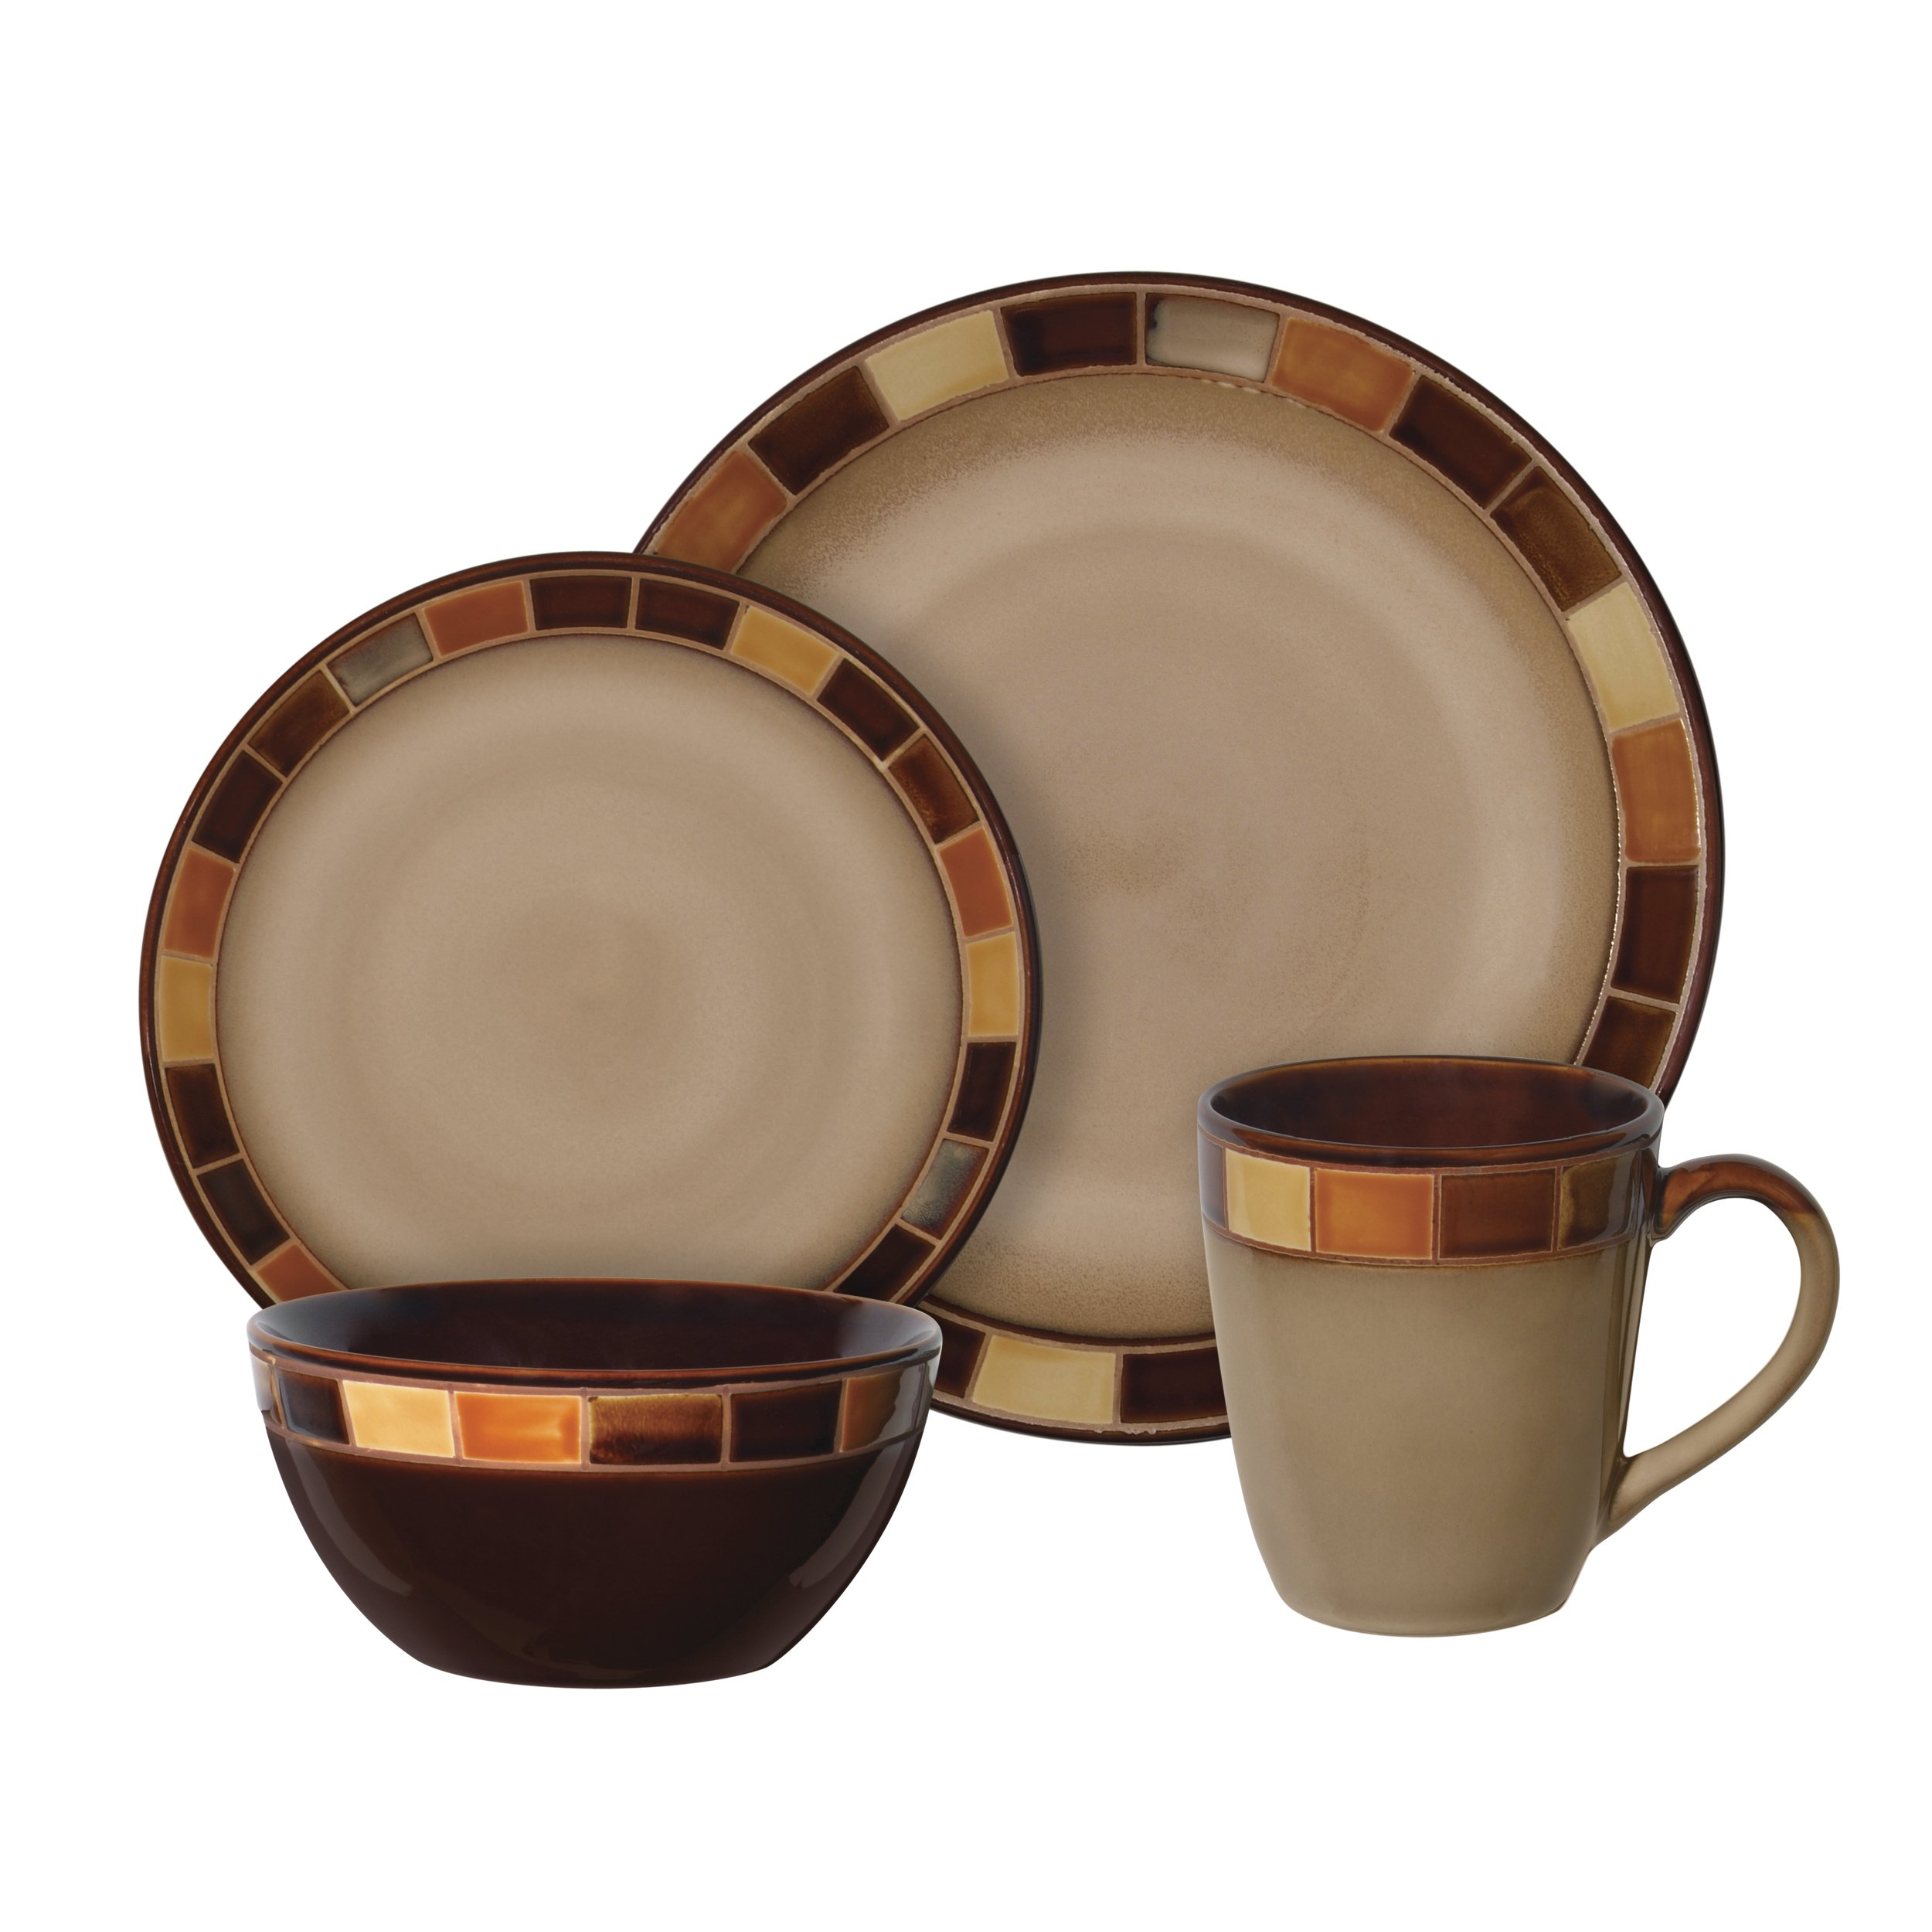 Gibson 70736.16RM Casa Estebana 16-piece Dinnerware Set Service for 4, Beige and Brown by Gibson (Image #2)